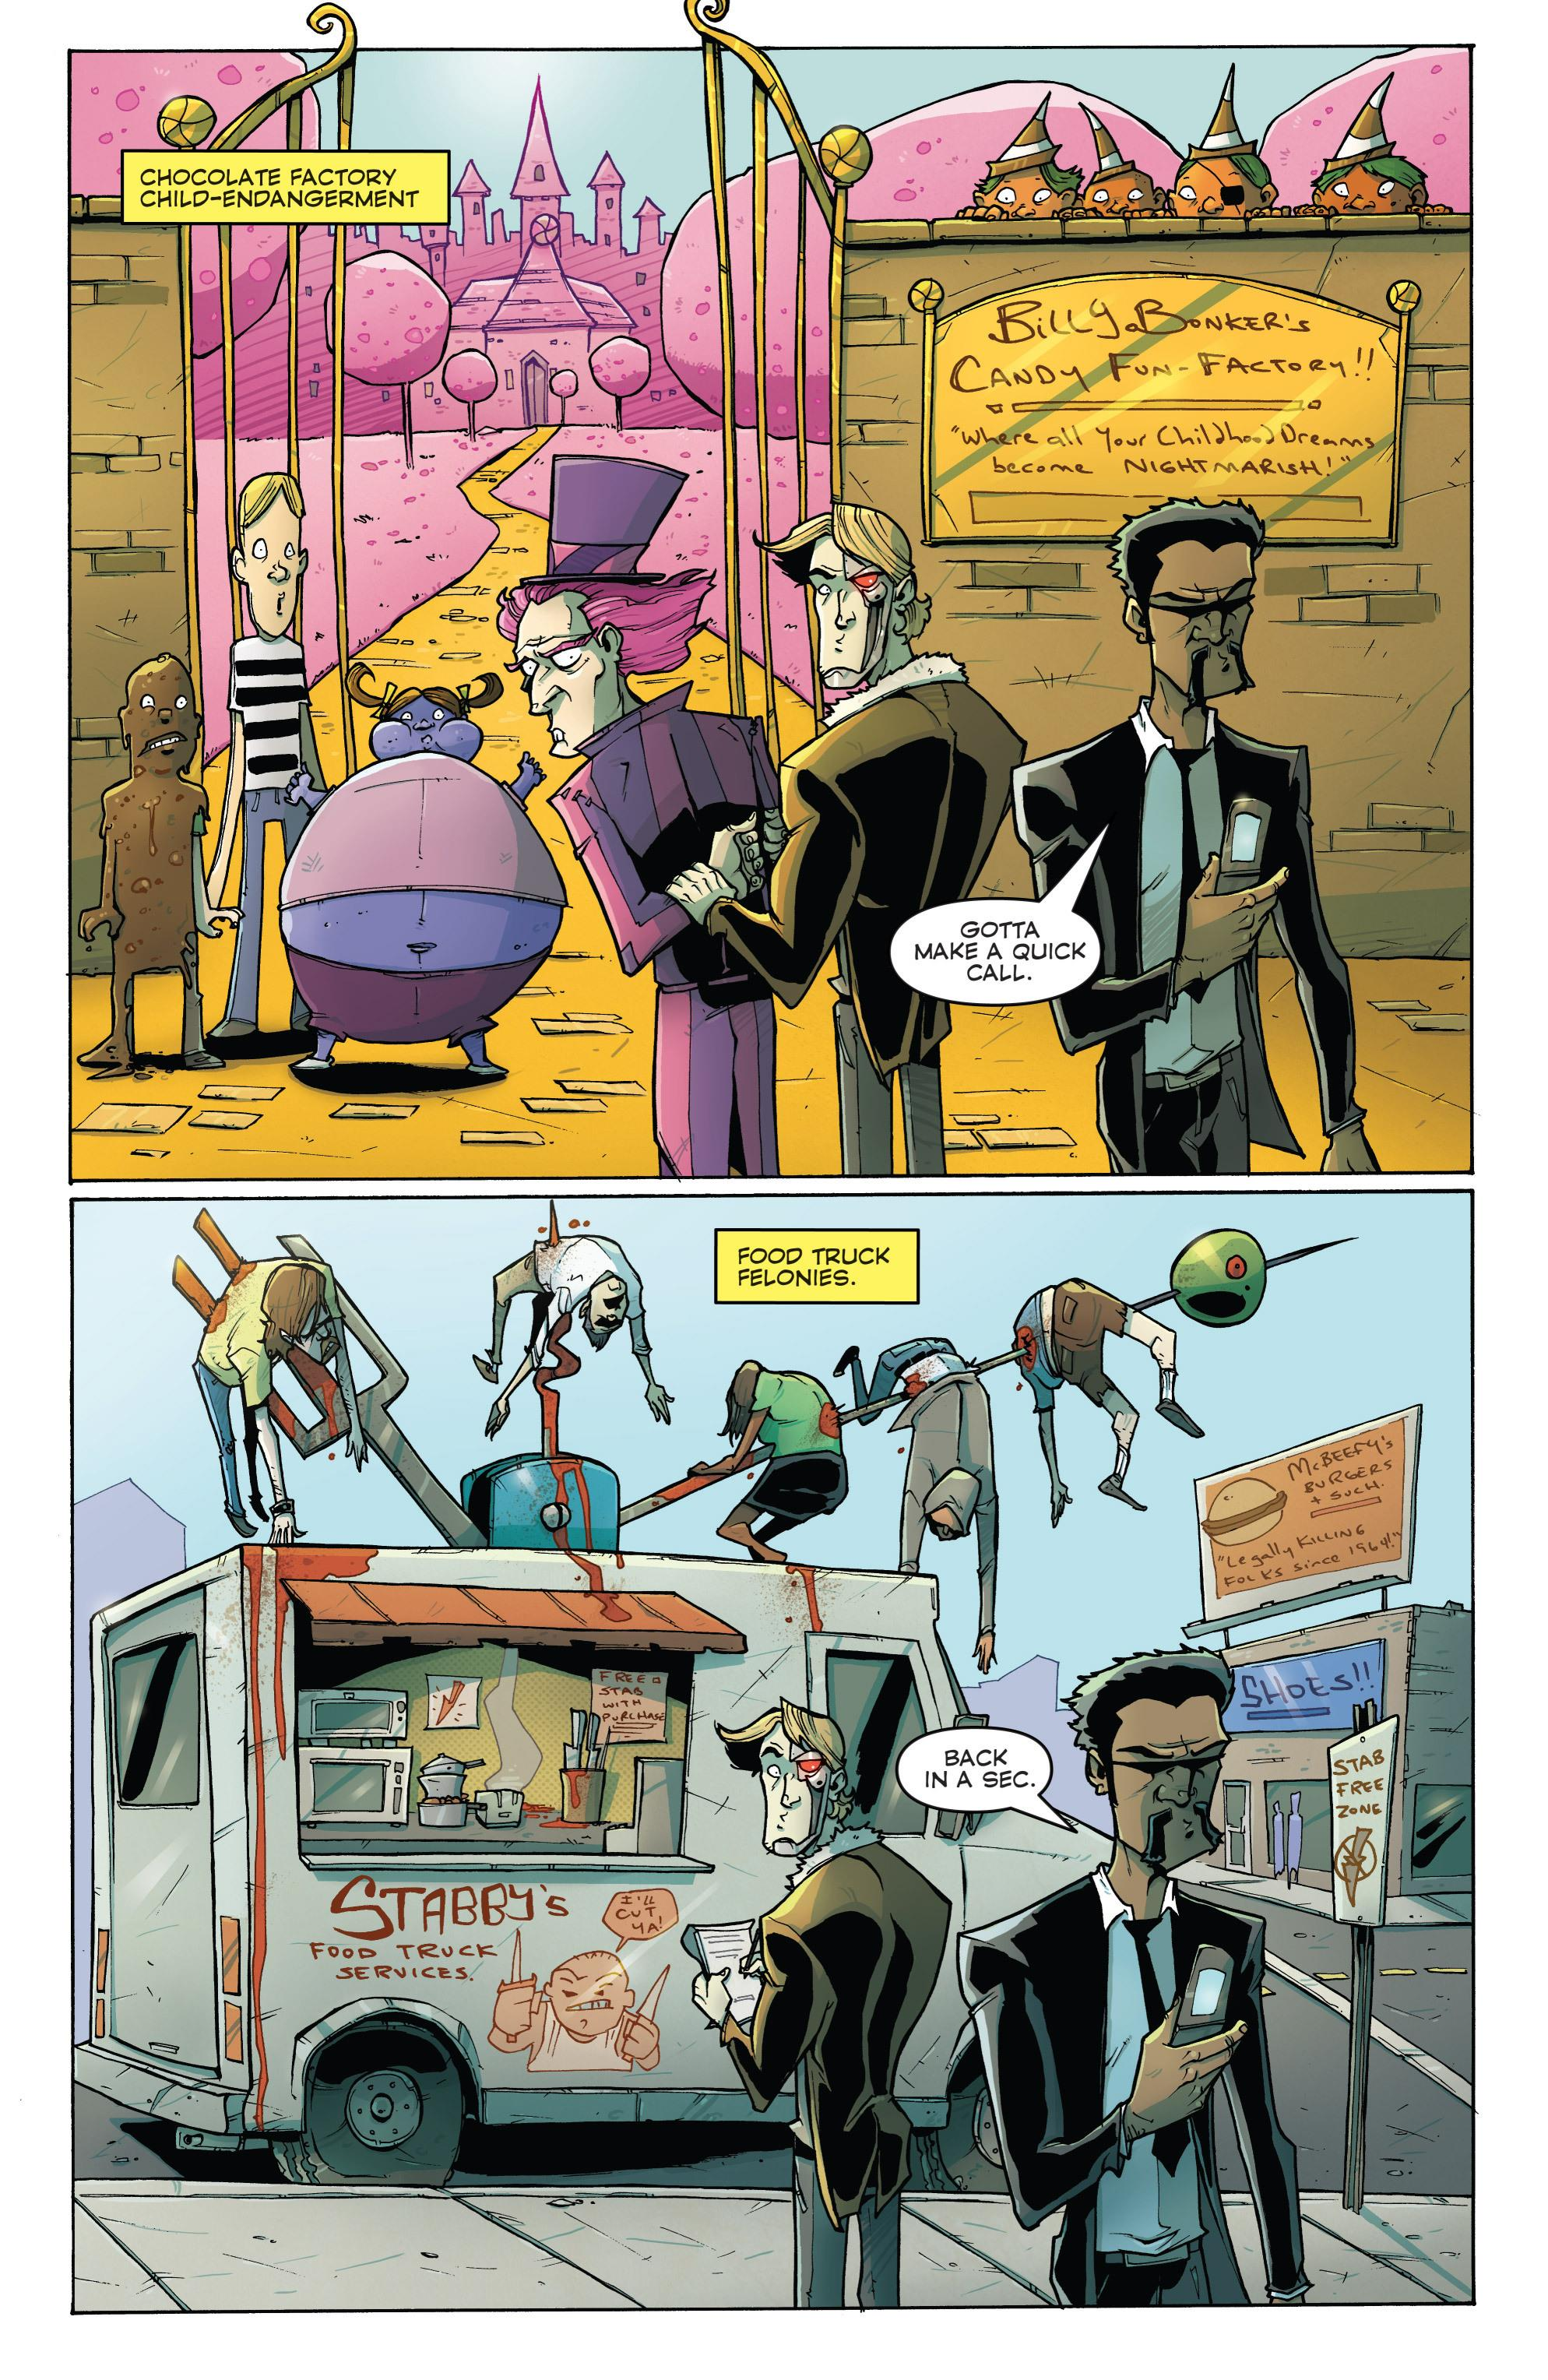 Chew Bad Apples review